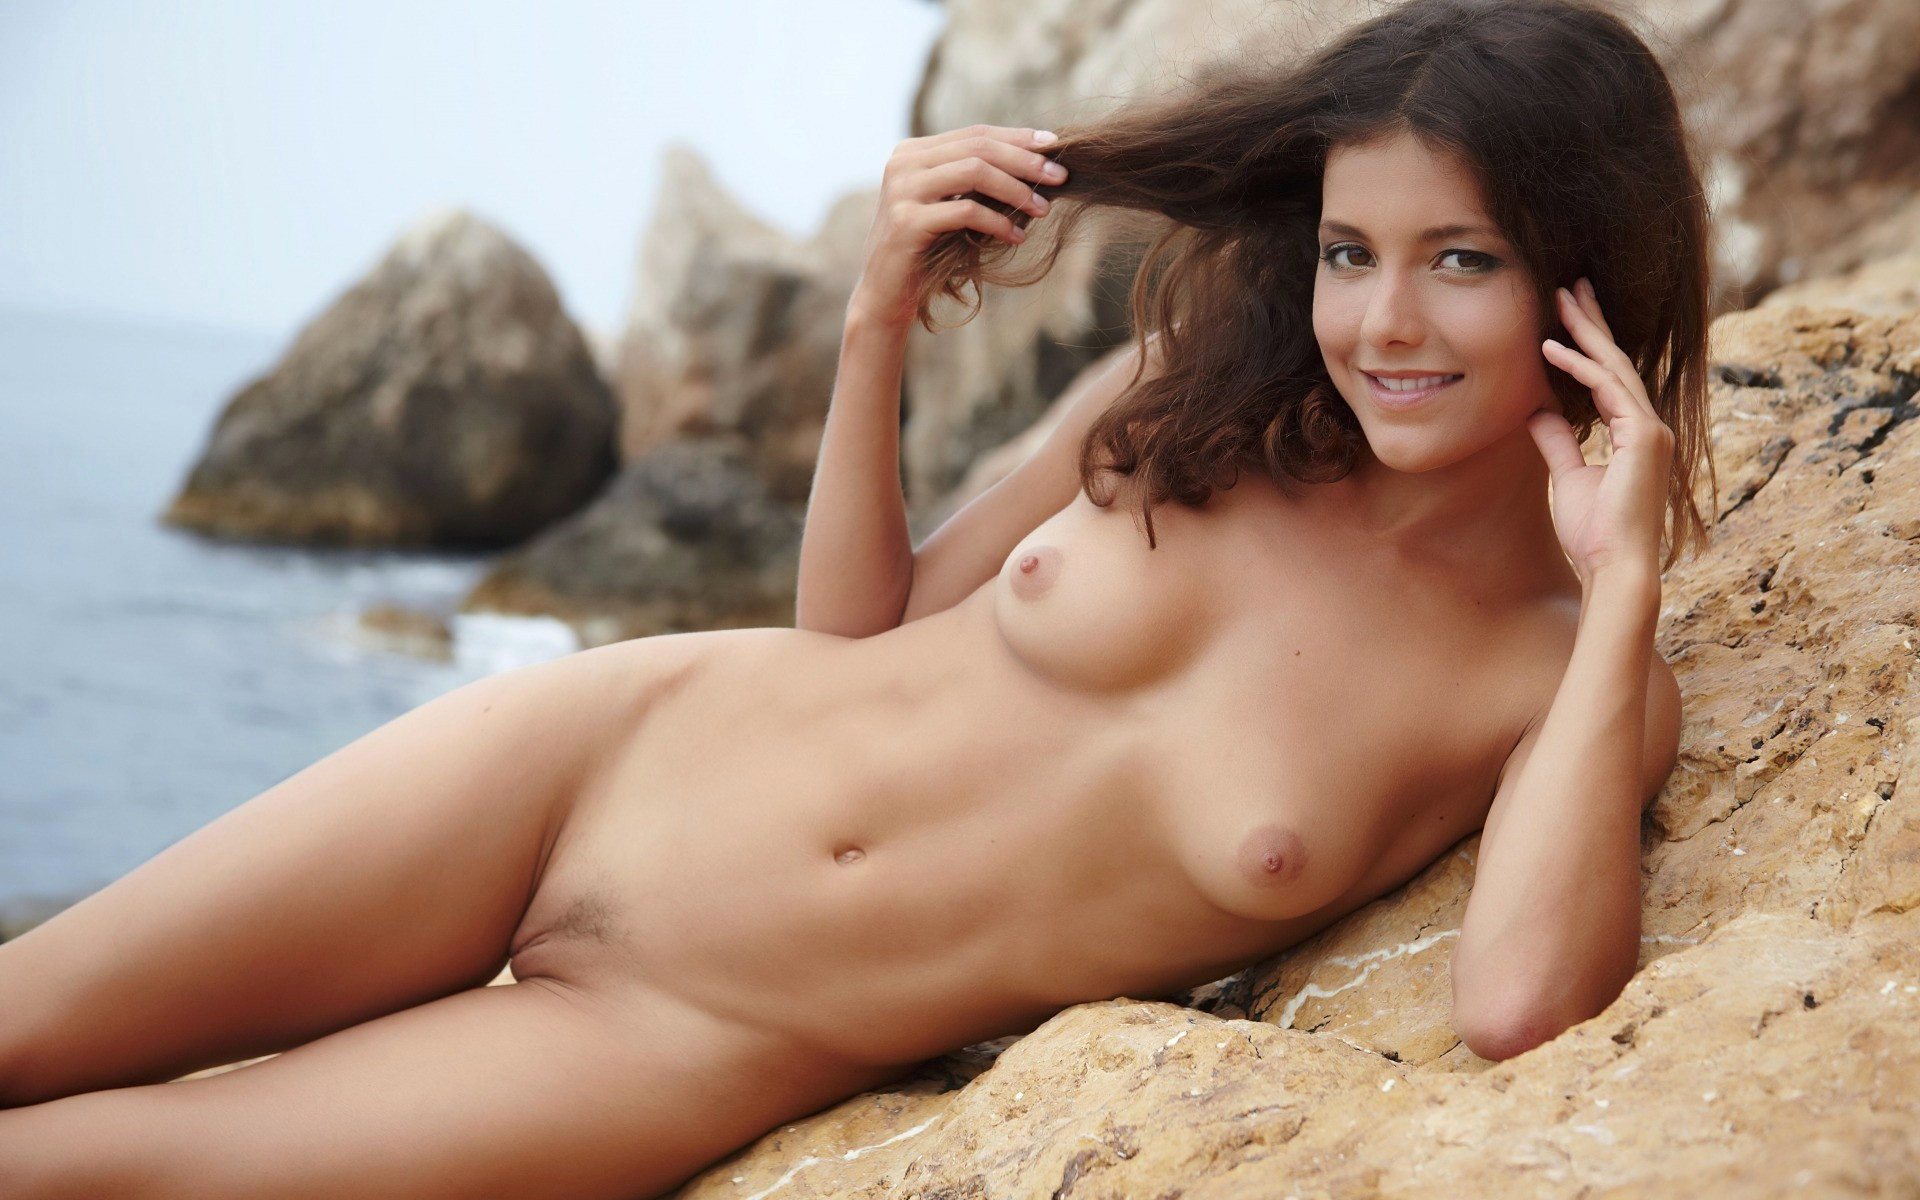 Beautiful nude women photographs